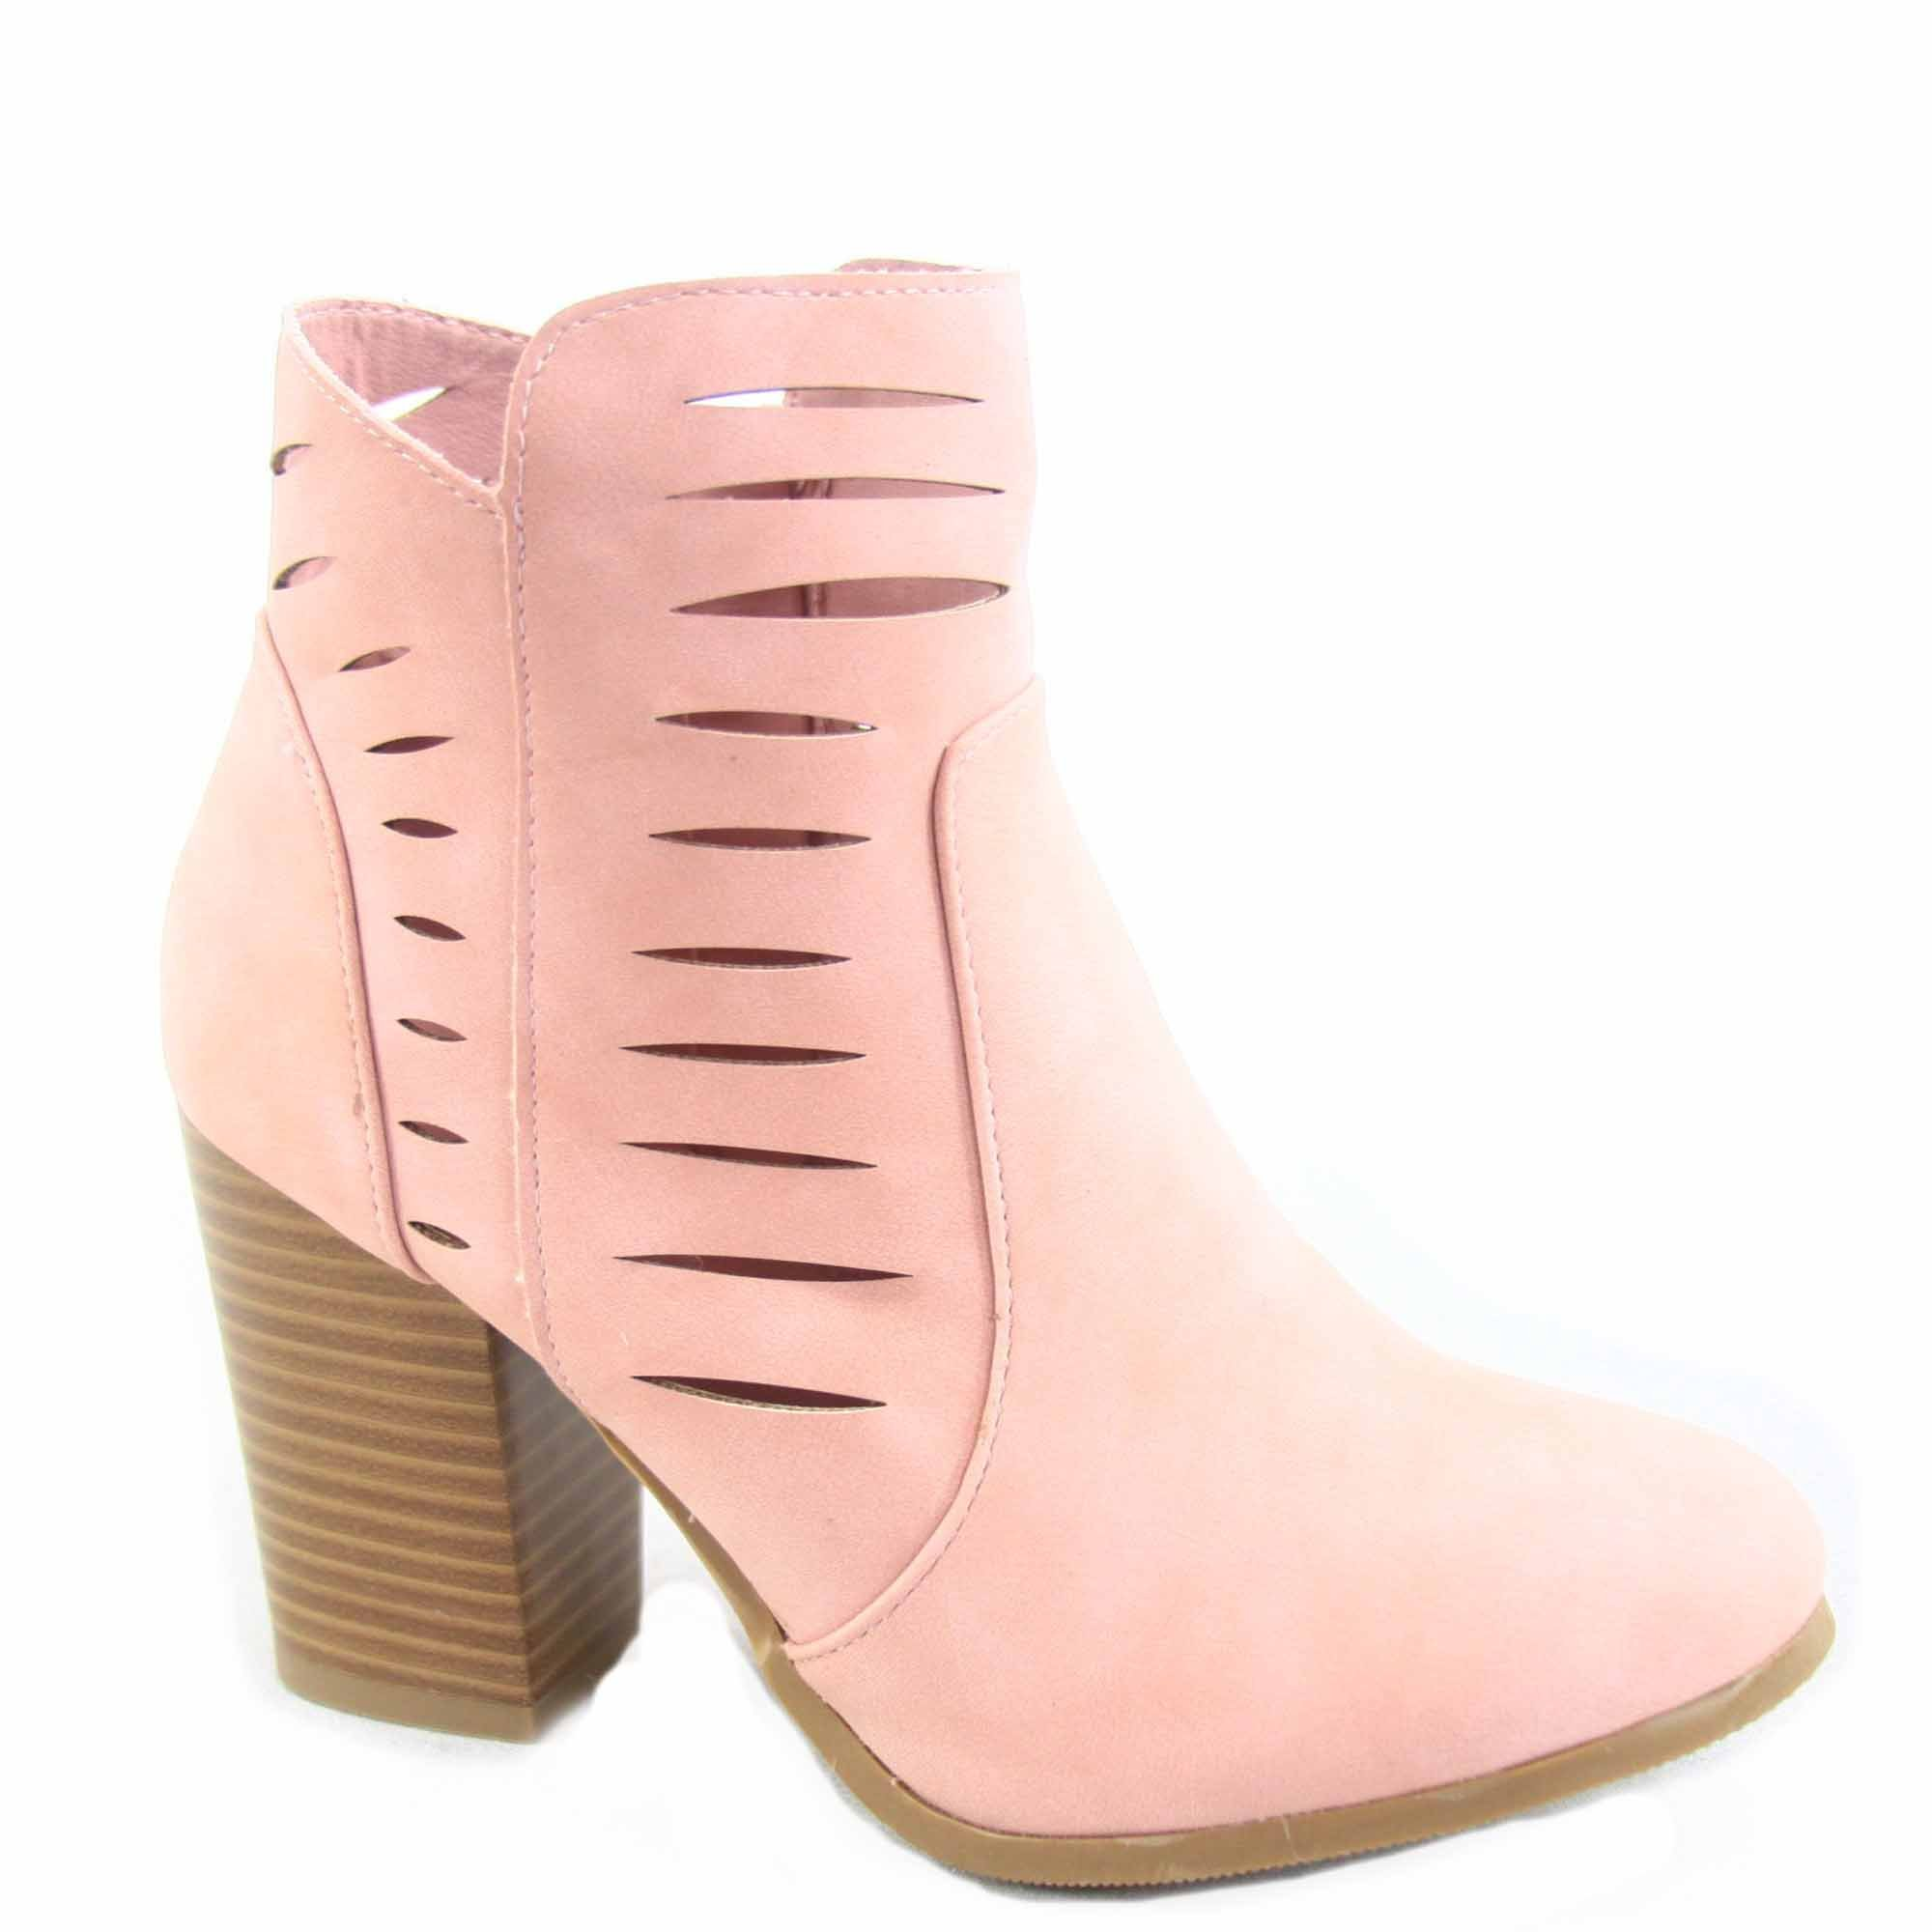 Top Moda Pavia-1 Women's Fashion Round Toe Chunky Heel Cut Out Ankle Booties Shoes (8.6 B(M) US, Blush)